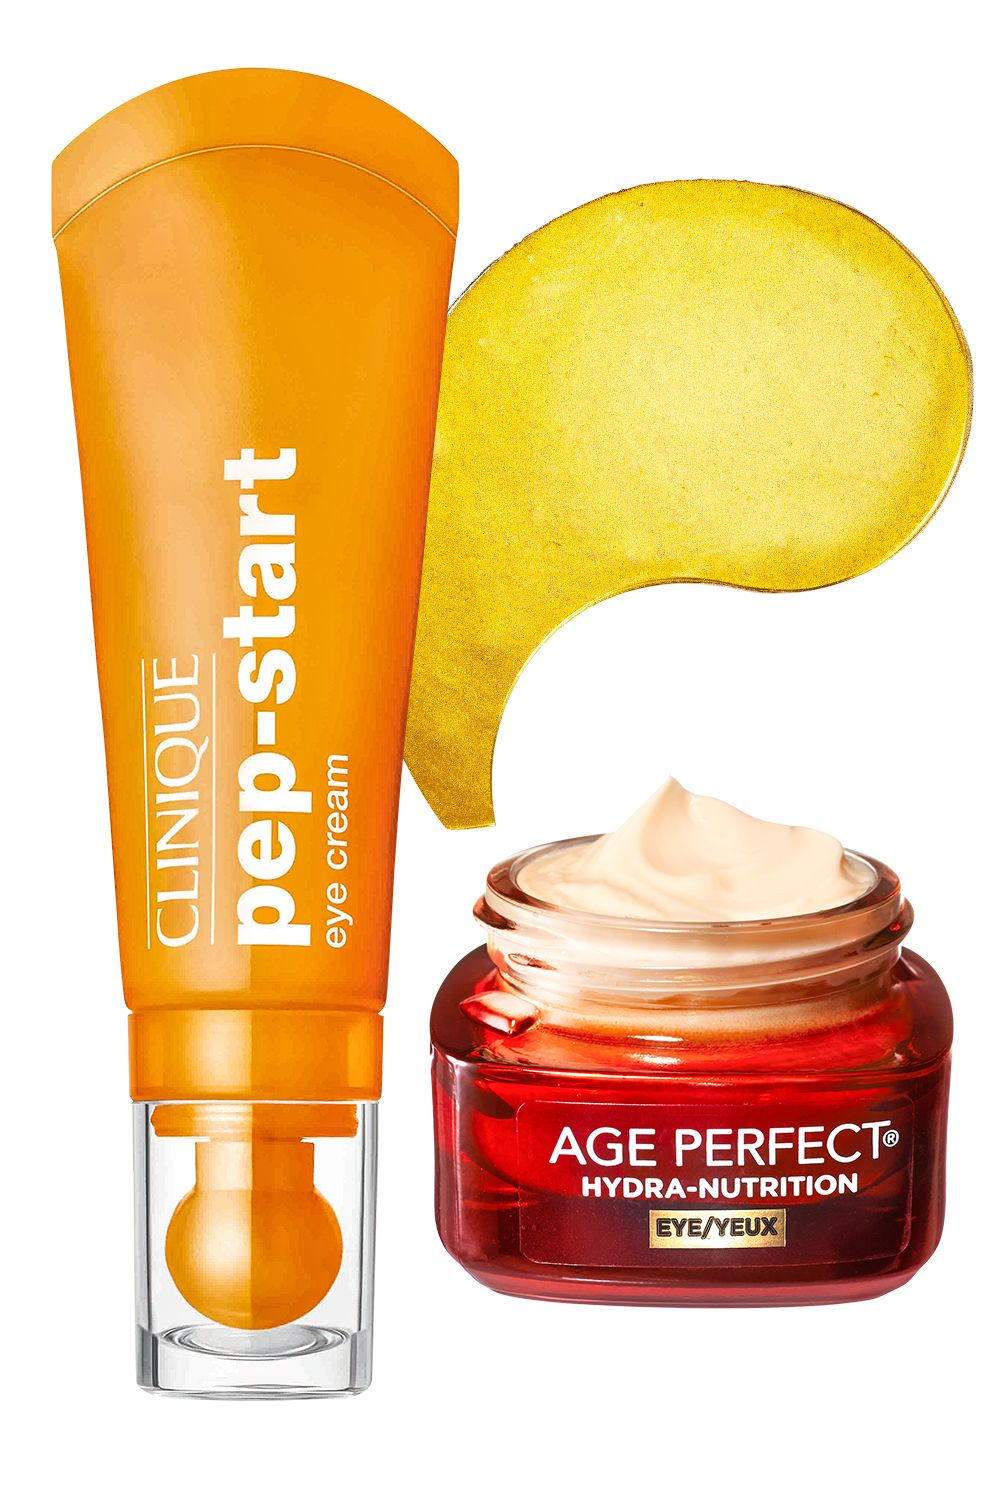 """<p>""""Your eyes are the greatest focus on your face, making them the smartest investment,"""" says Palm. Caffeine in Clinique's cream and Peter Thomas Roth's patches helps relieve puffiness, while deep moisturizers like shea butter in L'Oréal Paris's balm plump fine lines.</p><p><strong>Peter Thomas Roth</strong> 24K Gold Pure Luxury Lift & Firm Hydra-Gel Eye Patches, $75 for 60, <a href=""""http://www.ulta.com/ulta/browse/productDetail.jsp?productId=xlsImpprod13951005&skuId=2301905&cmpid=PS_Non!google!Product_Listing_Ads&cagpspn=pla&CAWELAID=330000200000506814&catargetid=330000200000199430&cadevice=c&gclid=CjwKEAjwlfO3BRDR4Pj_u-iO2U0SJAD88y1SIRYybwtpUumXHSi7CFPhBJbjXyXSur7Vp3pUDEKRHxoC3ufw_wcB"""" target=""""_blank"""">ulta.com</a>; <strong>Clinique</strong> Pep-Start Eye Cream, $27, <a href=""""http://www.sephora.com/pep-start-eye-cream-P403817?skuId=1774819&browserdefault=true&om_mmc=ppc-GG&mkwid=syvo2GN0V&pcrid=56697993399&pdv=c&site=_search&country_switch=&lang=en&gclid=CjwKEAjwlfO3BRDR4Pj_u-iO2U0SJAD88y1SGqY1XhKDA7IvtLREIJQvJRlceuwhjzomiQqPKAT-ZBoCxcbw_wcB"""" target=""""_blank"""">sephora.com</a>; <strong>L'Oréal Paris </strong>Age Perfect Hydra-Nutrition Eye Balm, $20, <a href=""""http://www.drugstore.com/products/prod.asp?pid=572552&catid=182918&aid=338666&aparam=572552&kpid=572552&CAWELAID=120142990000284701&CAGPSPN=pla"""" target=""""_blank"""">drugstore.com</a>. </p>"""